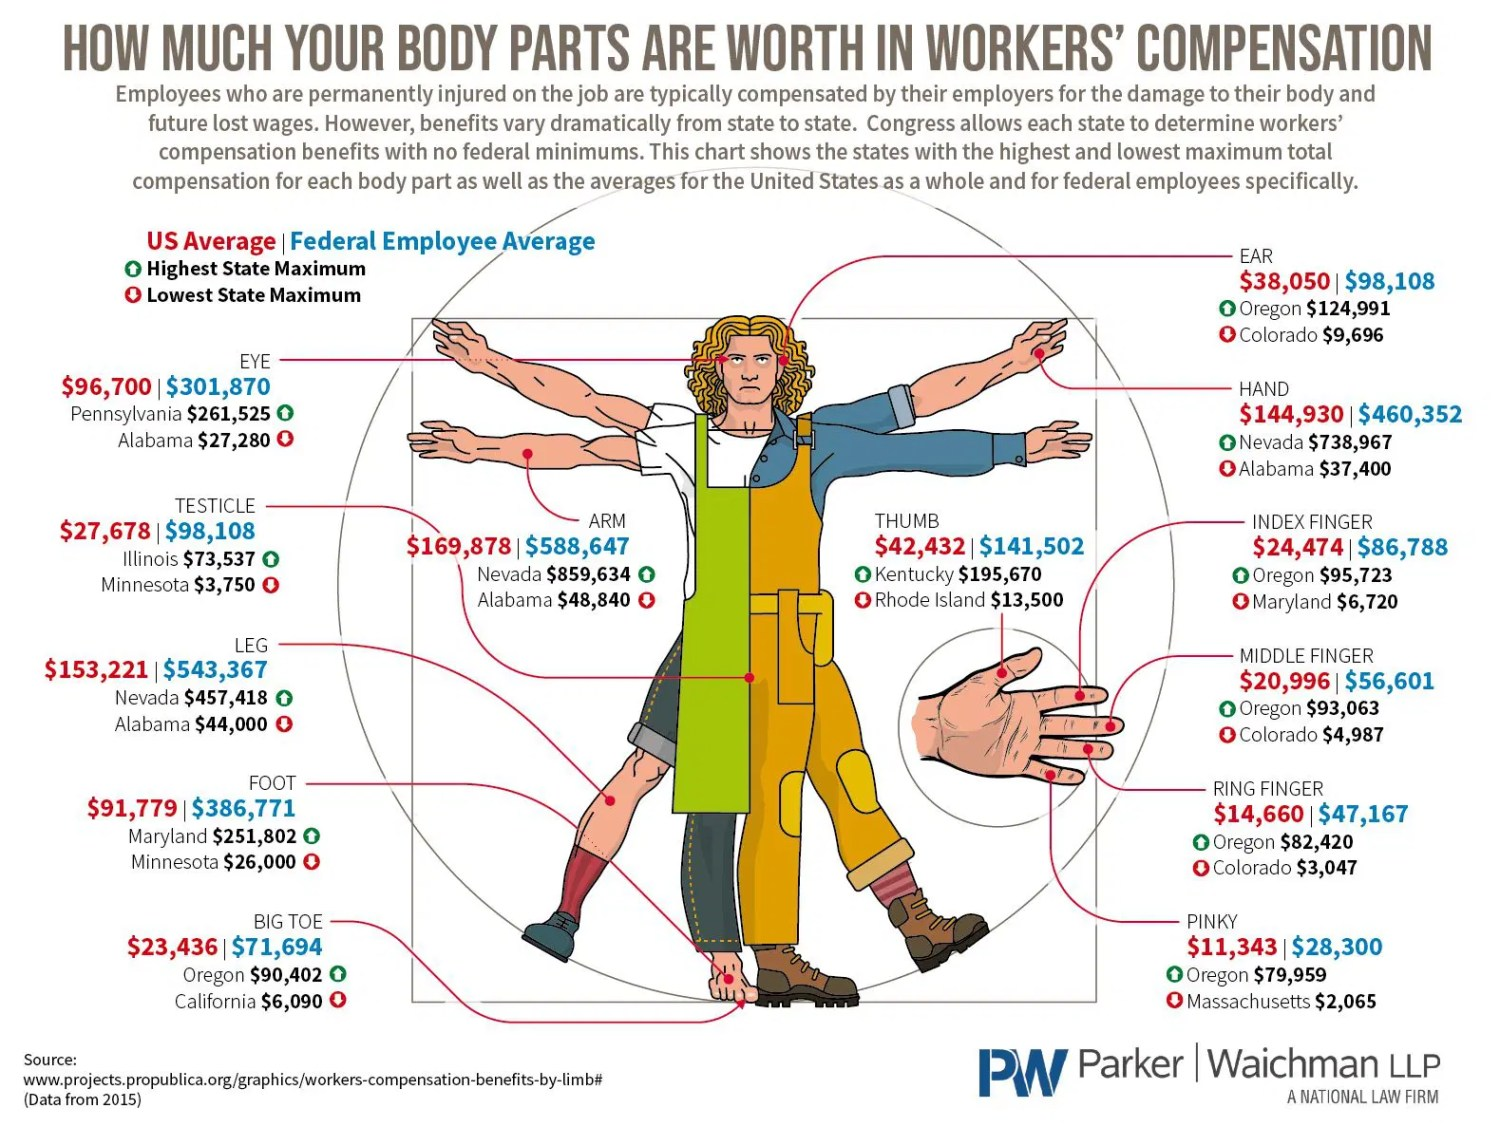 How Much Your Body Parts Are Worth in Workers' Compensation - YourLawyer.com - Infographic